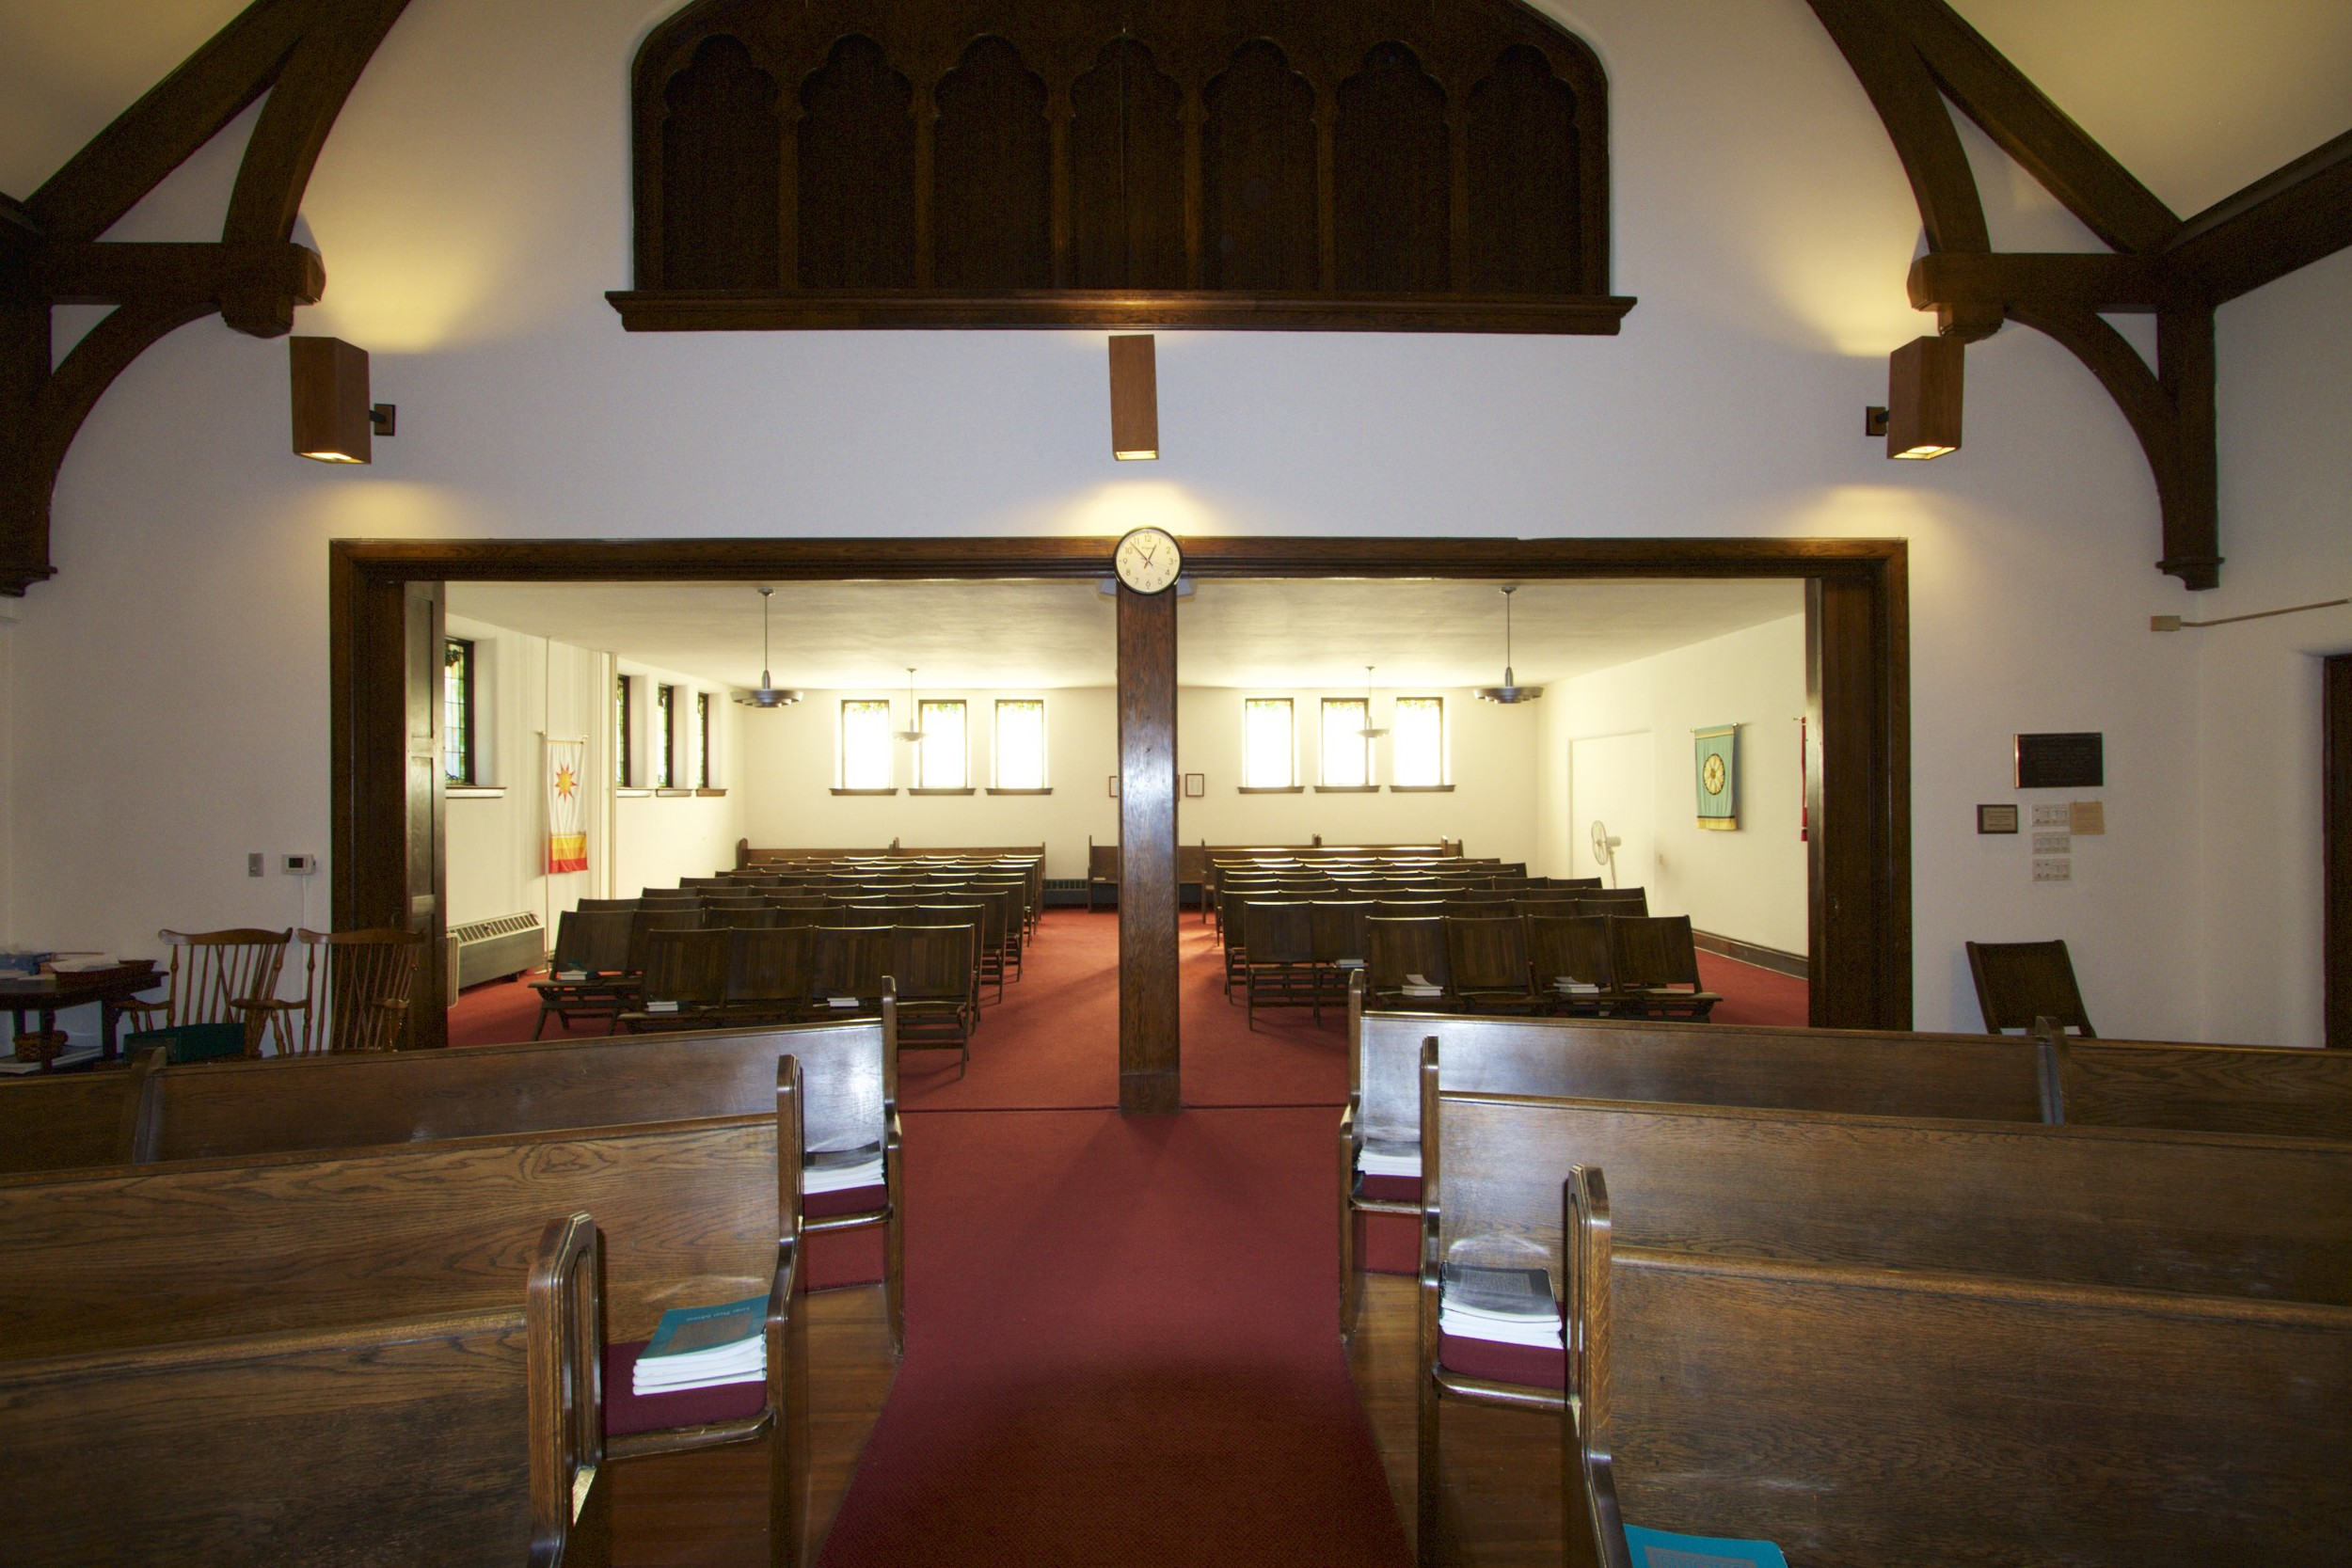 A view of the Sanctuary from the middle of the main space looking toward the back. There are nine rows of folding chairs on each side of the aisle.